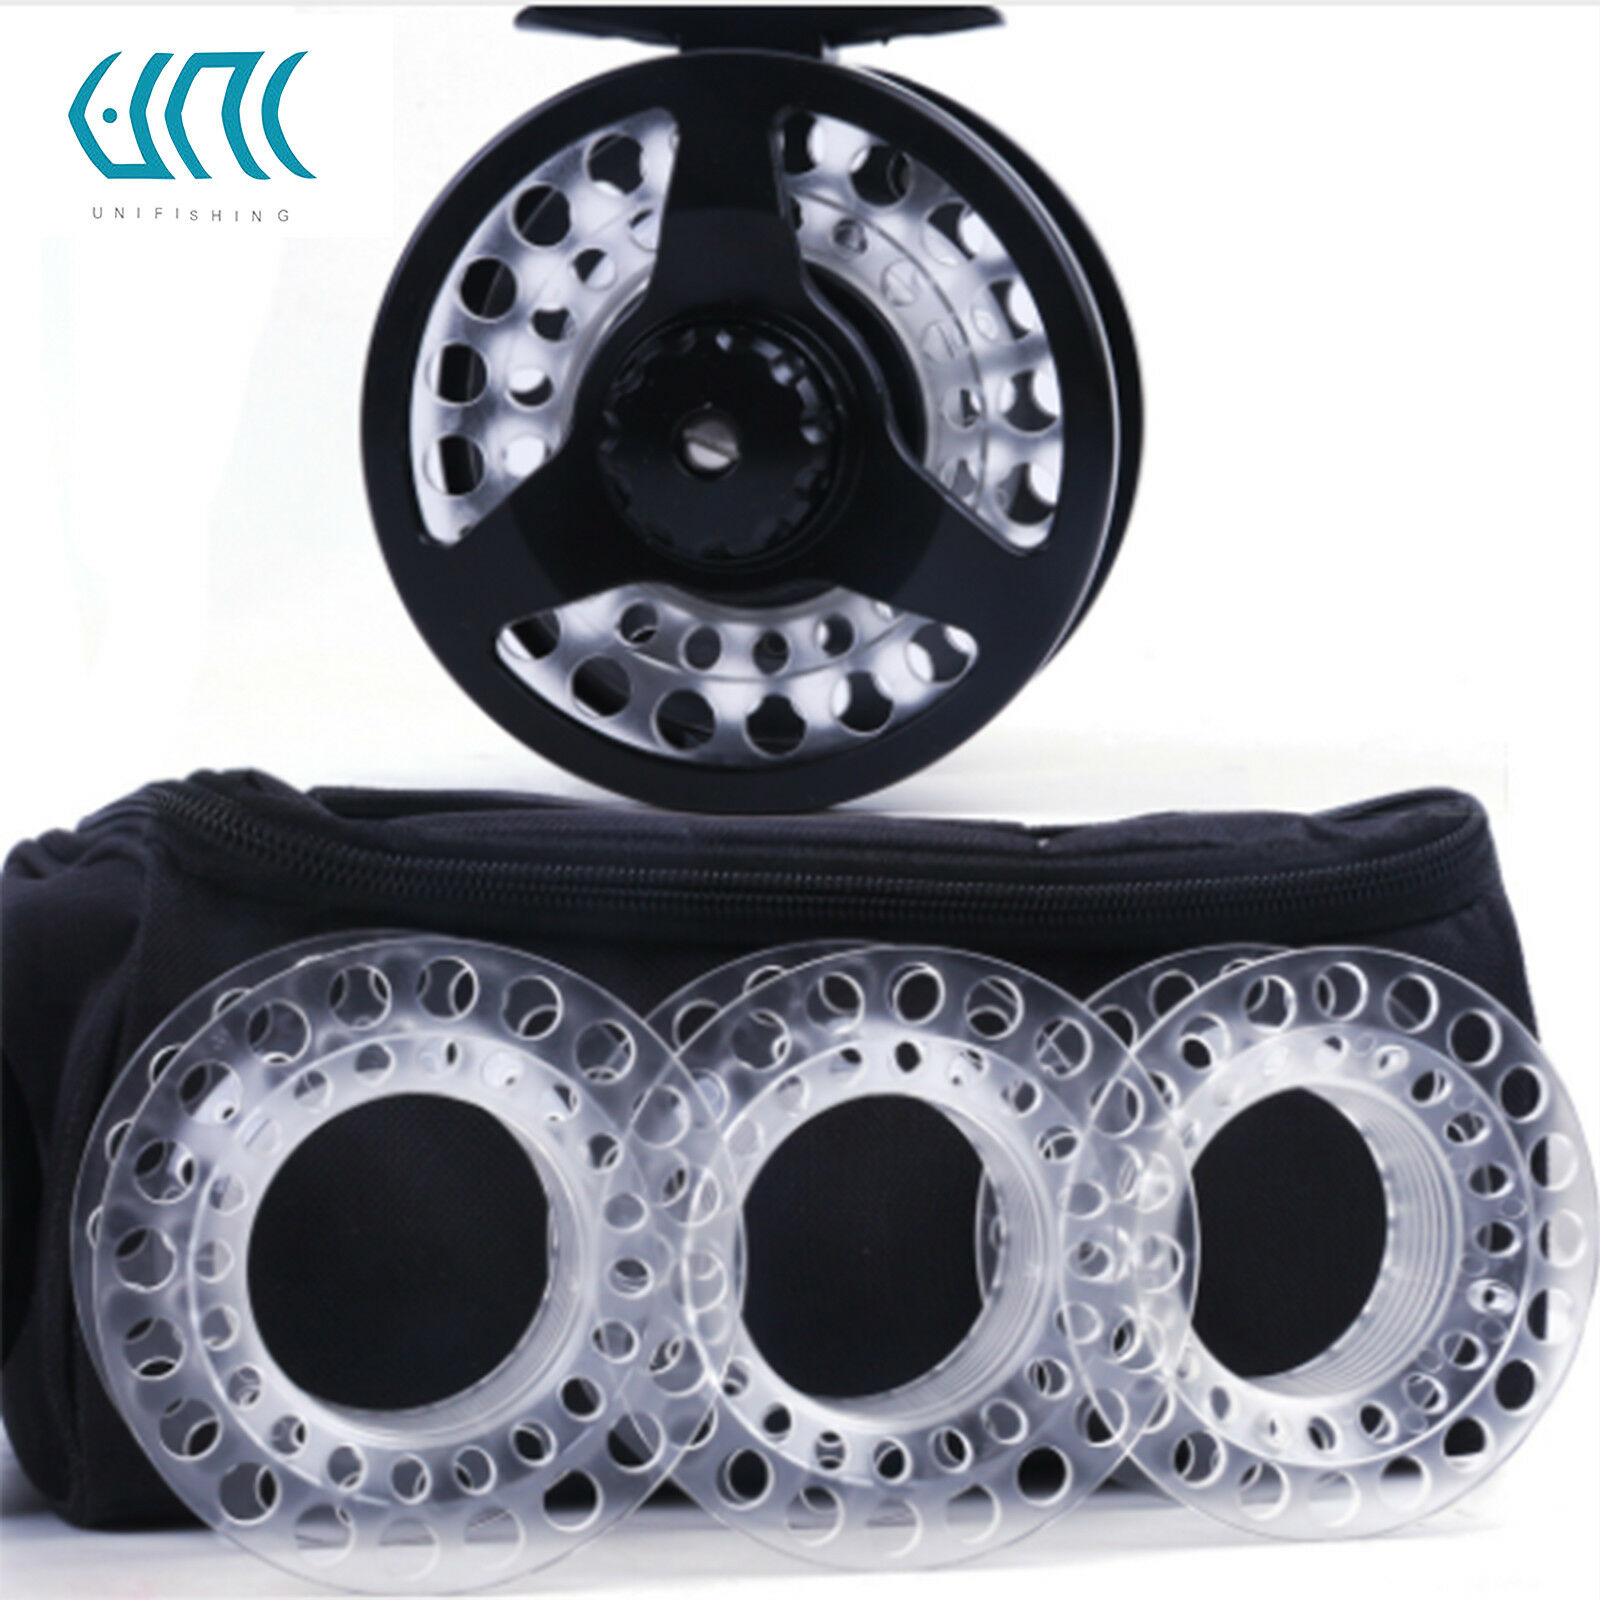 Unifishing Fly Reel Combo Cassette Fly Fishing Reel With 3 Extra Cassette Spools